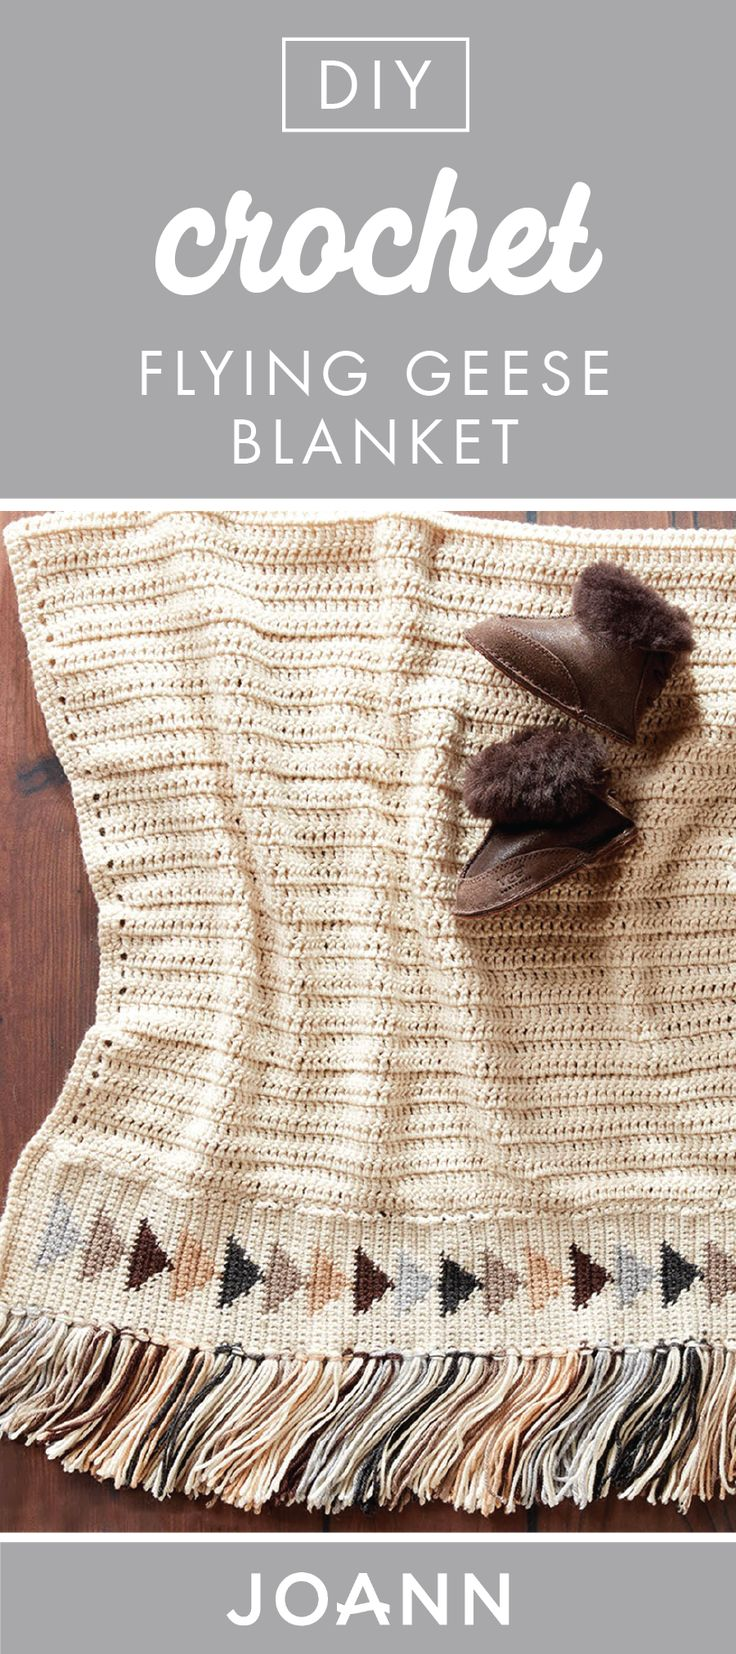 Full of handmade charm, this DIY Crochet Flying Geese Blanket tutorial from JOANN is ideal for adding to your living room. Plus, you can choose the yarn color of your choice to match the style of your home design!